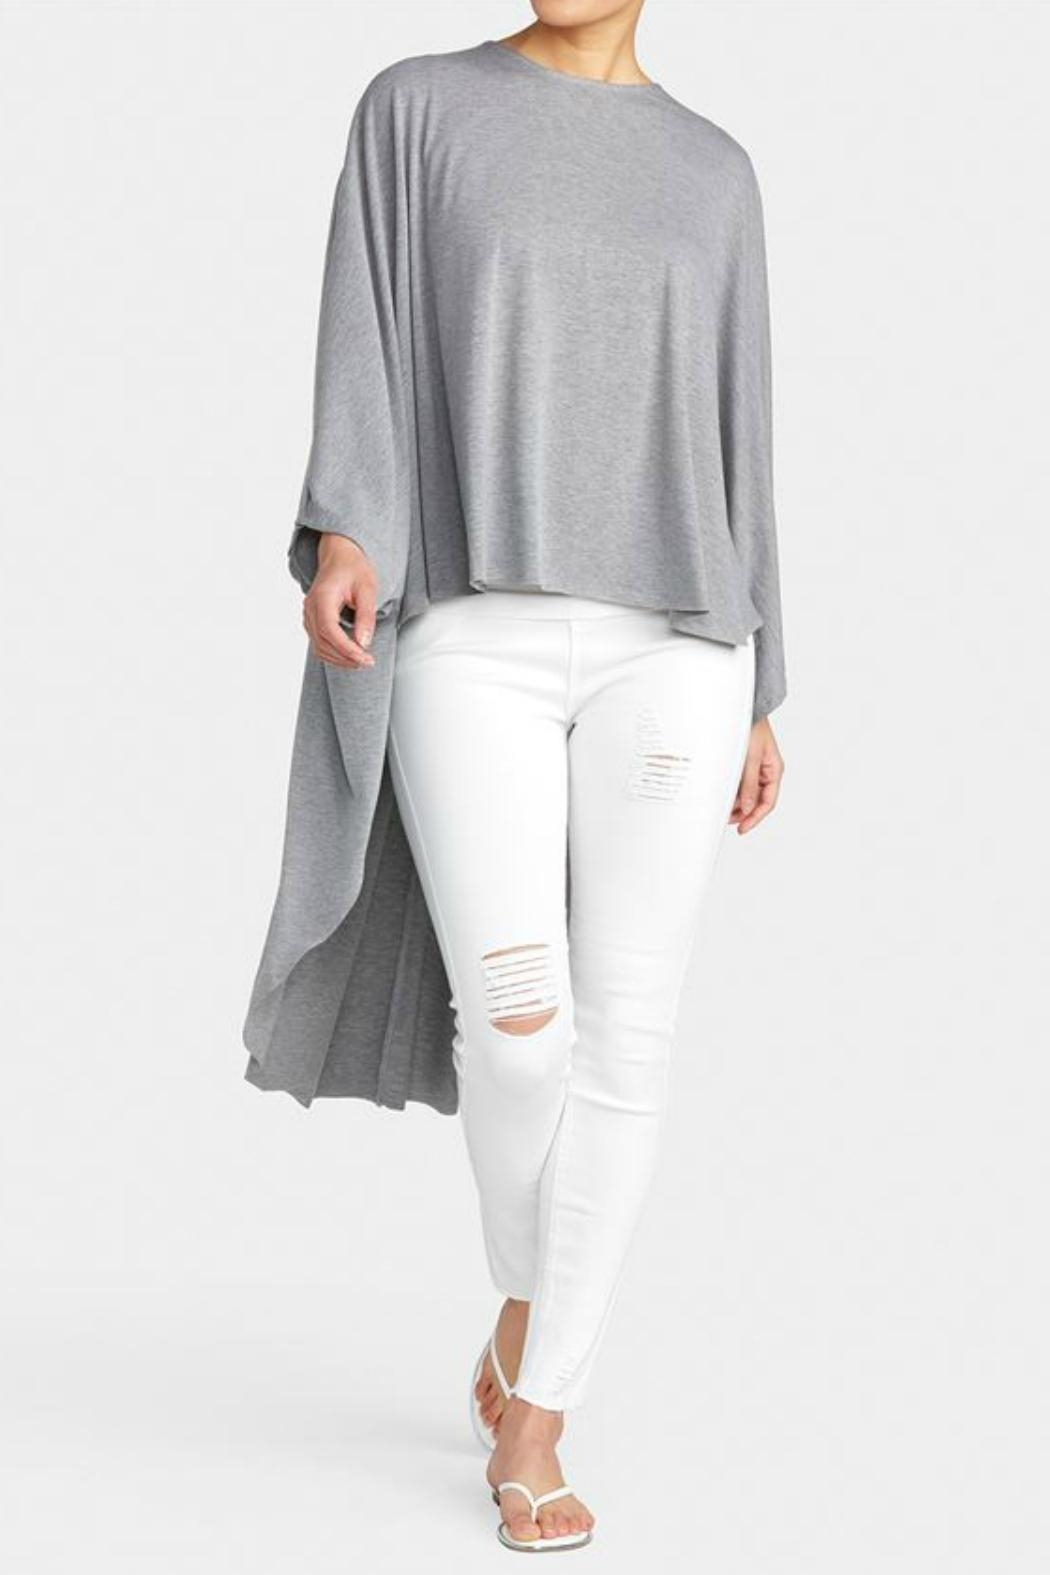 Coco + Carmen Dolman High-Low Cape - Front Cropped Image